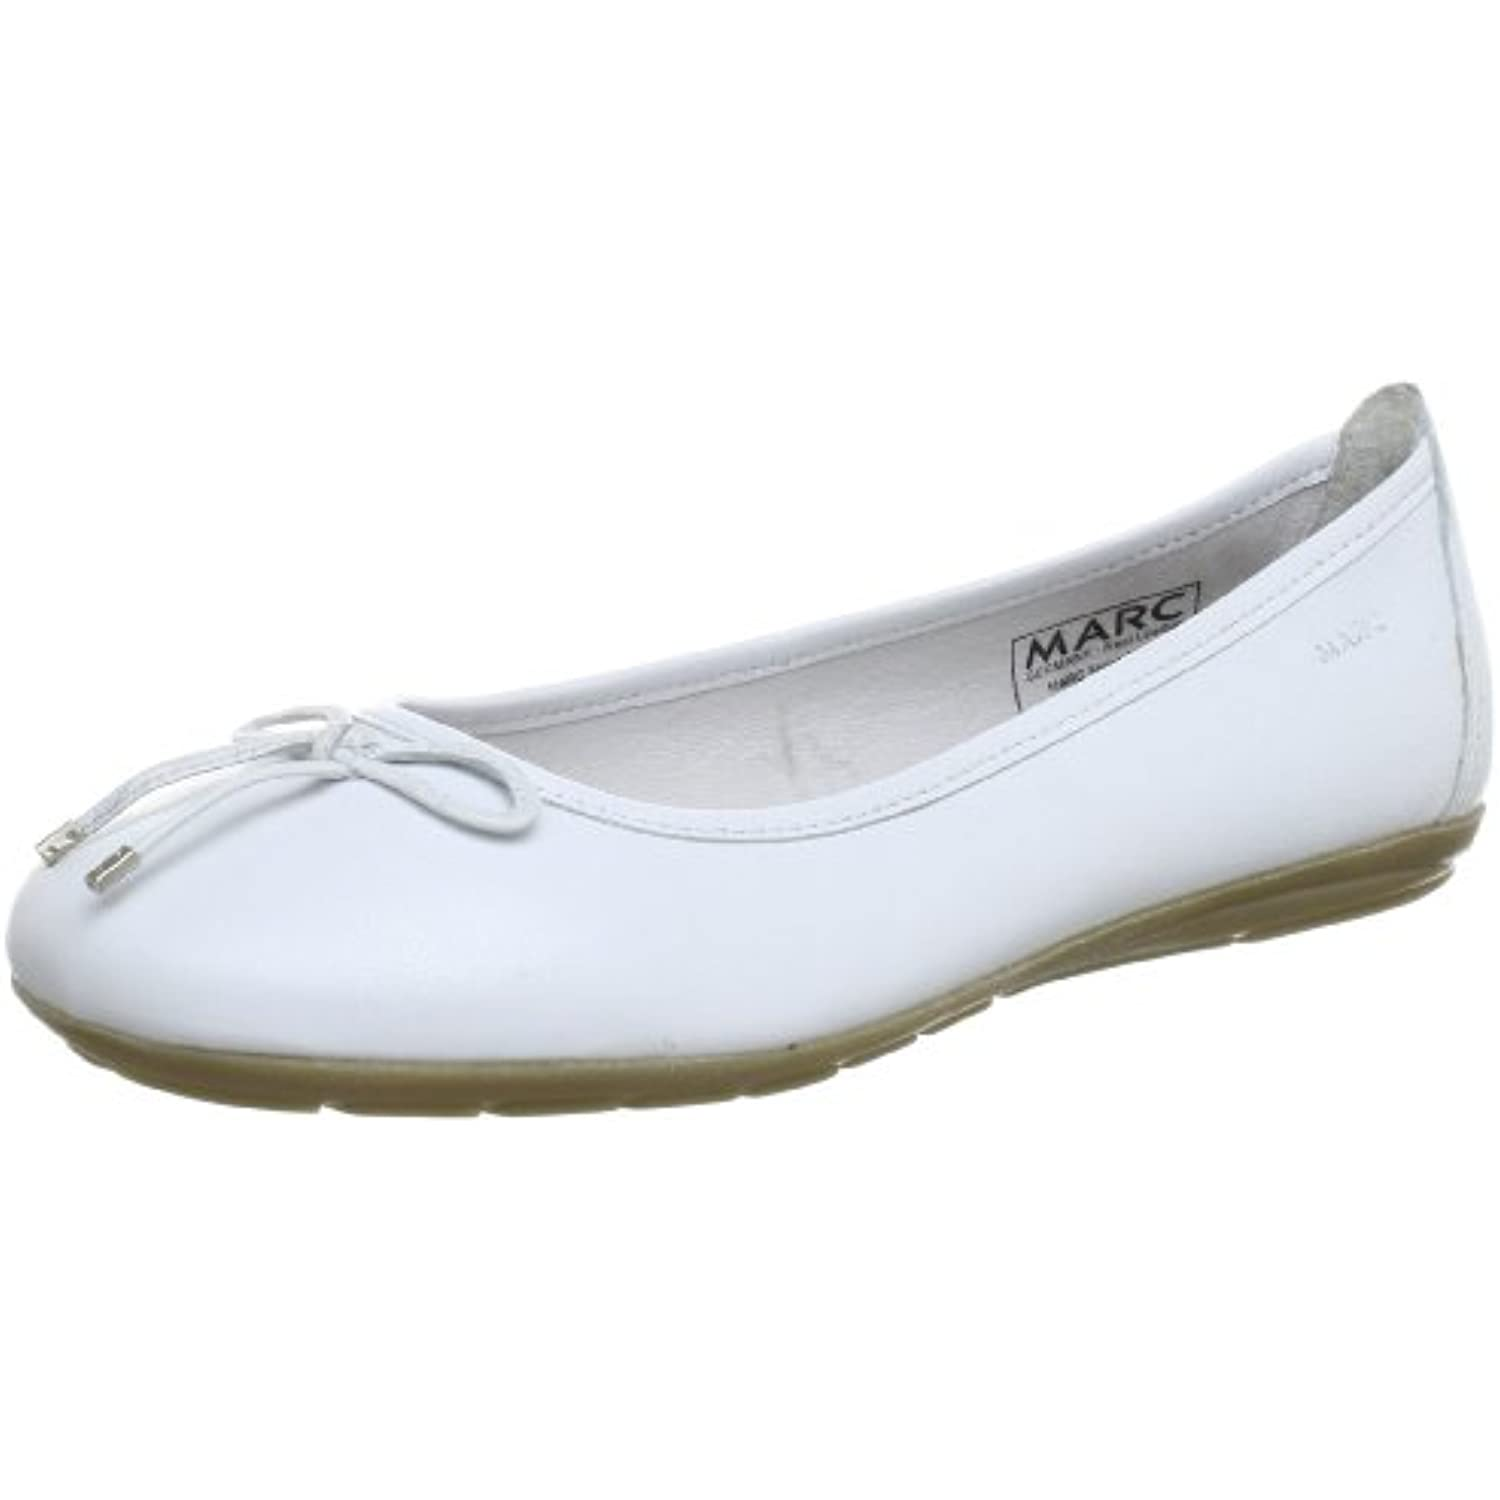 01 1 650 100Ballerines Shoes Marc FemmeB009tqnvca 26 nNm8w0